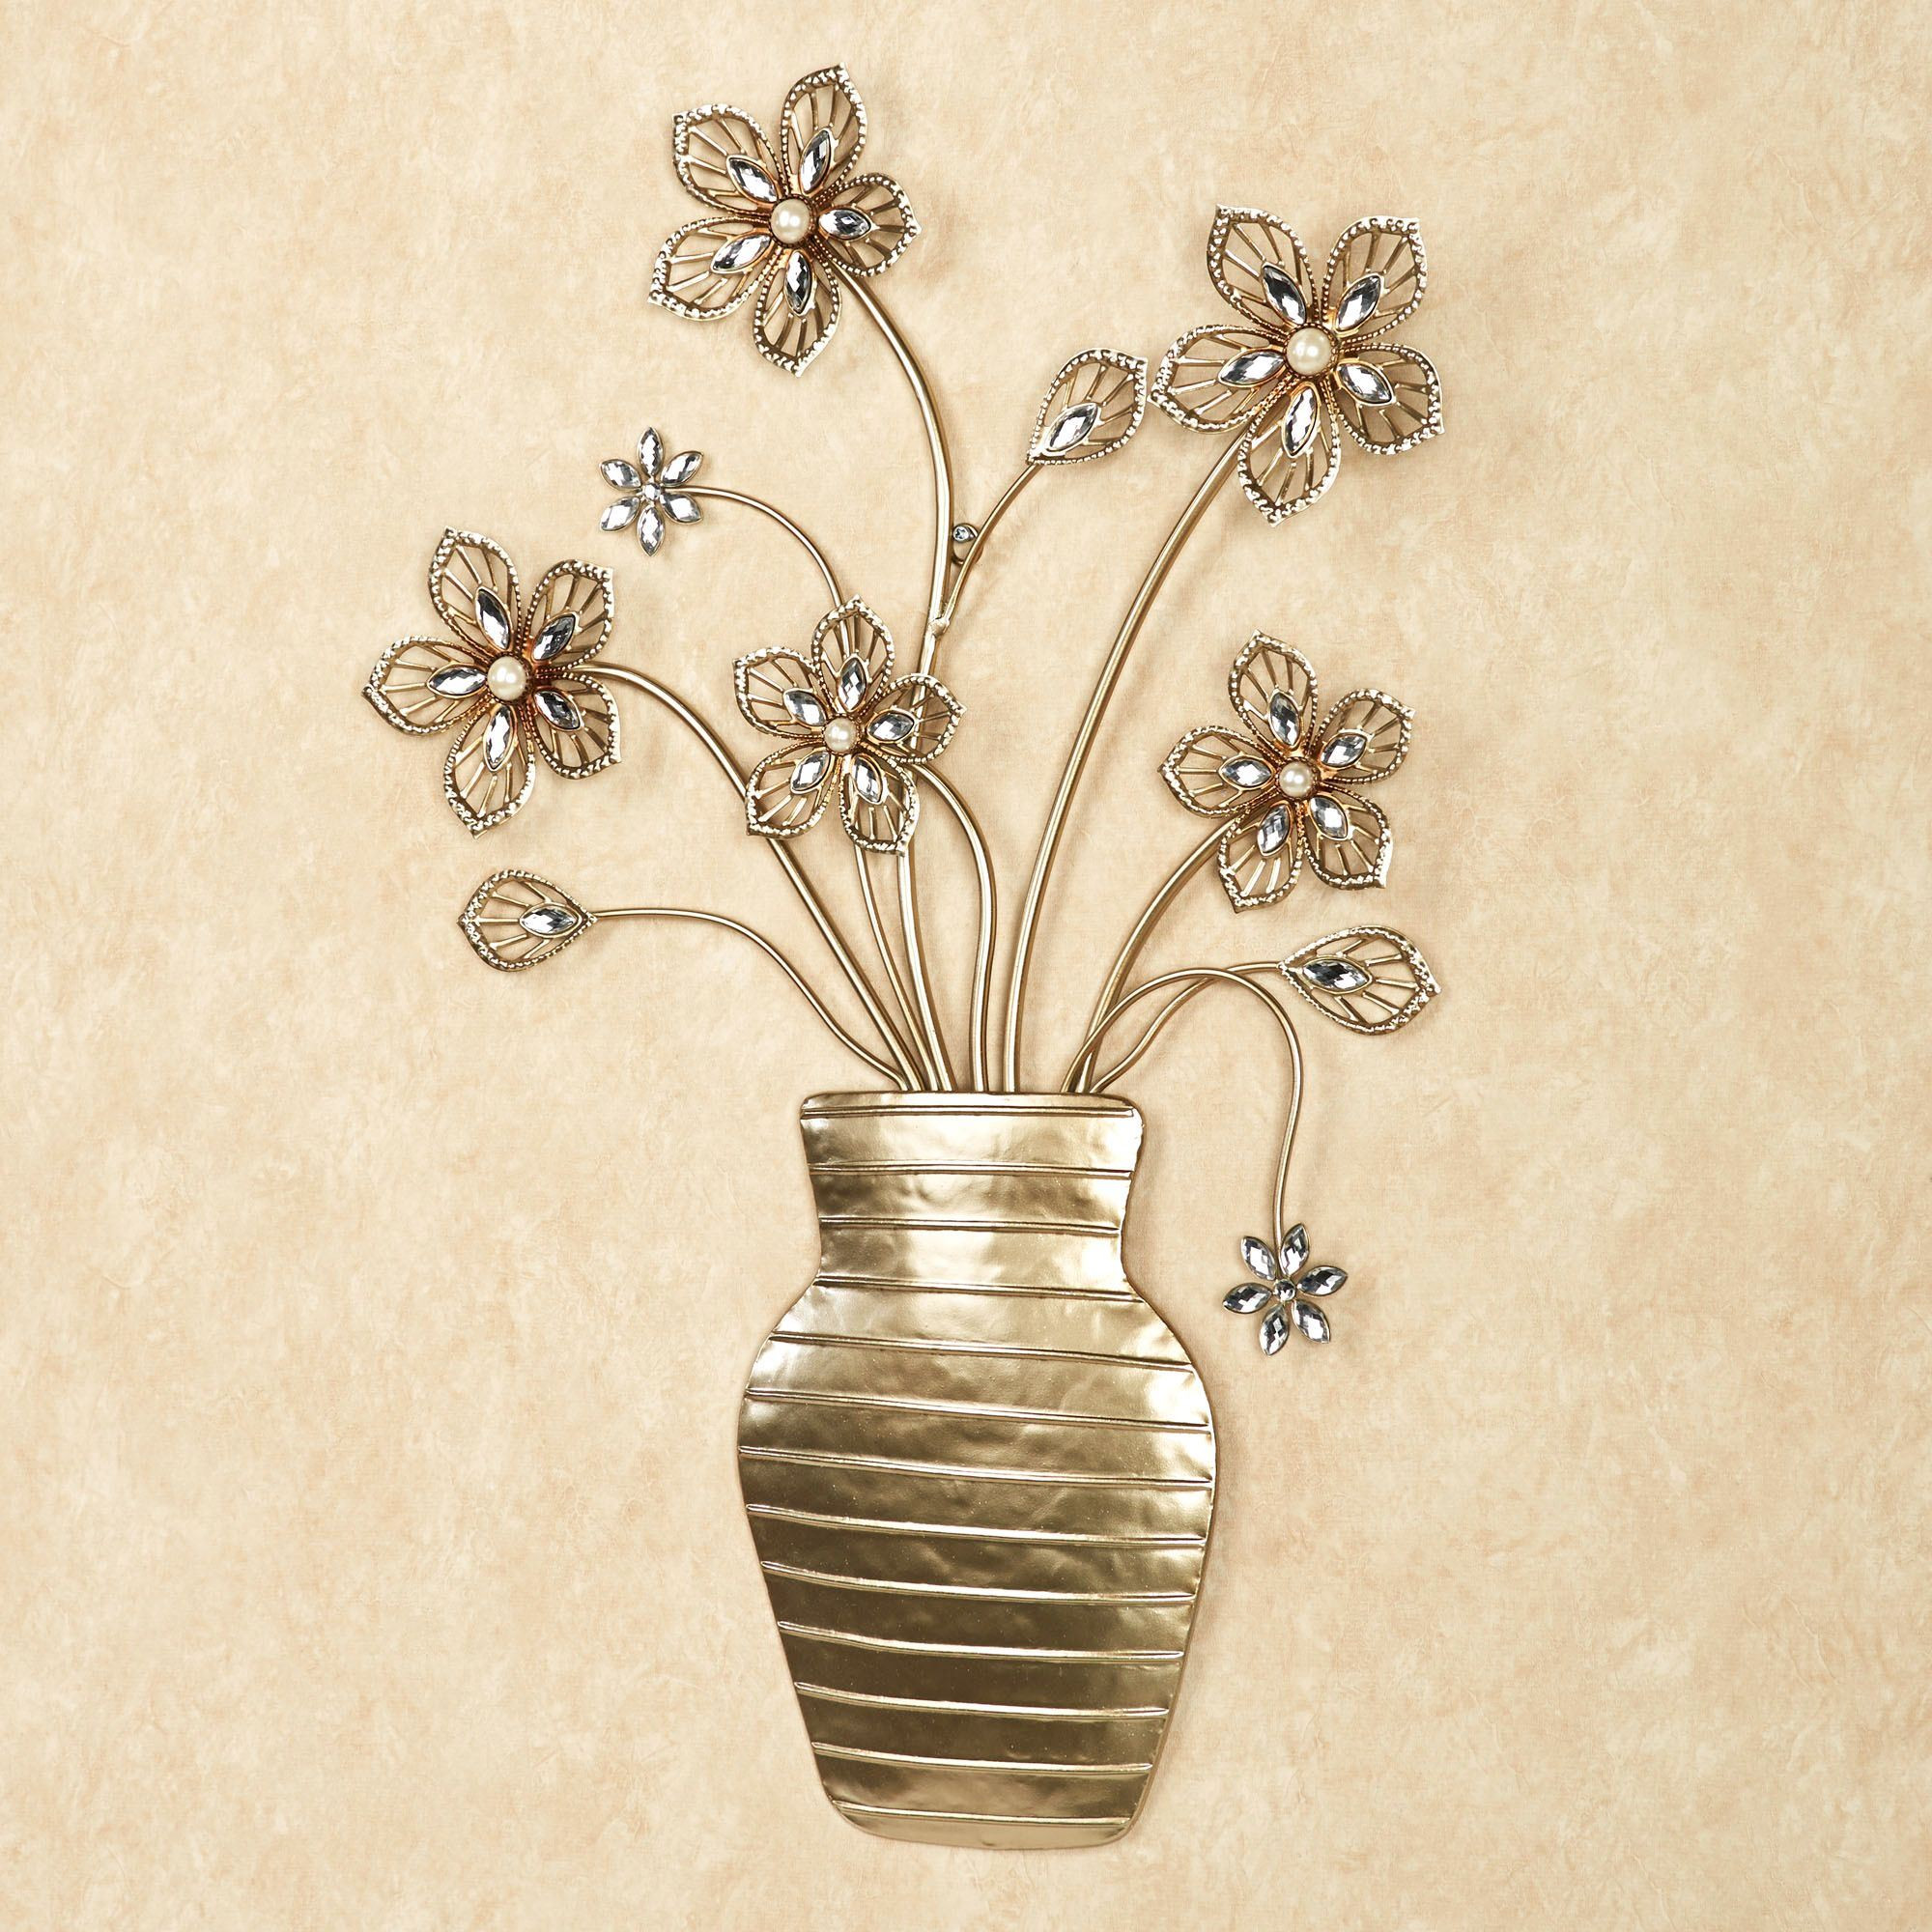 cylindrical glass vase of wall vases for flowers wall ideas for wall vase sconce pixball com